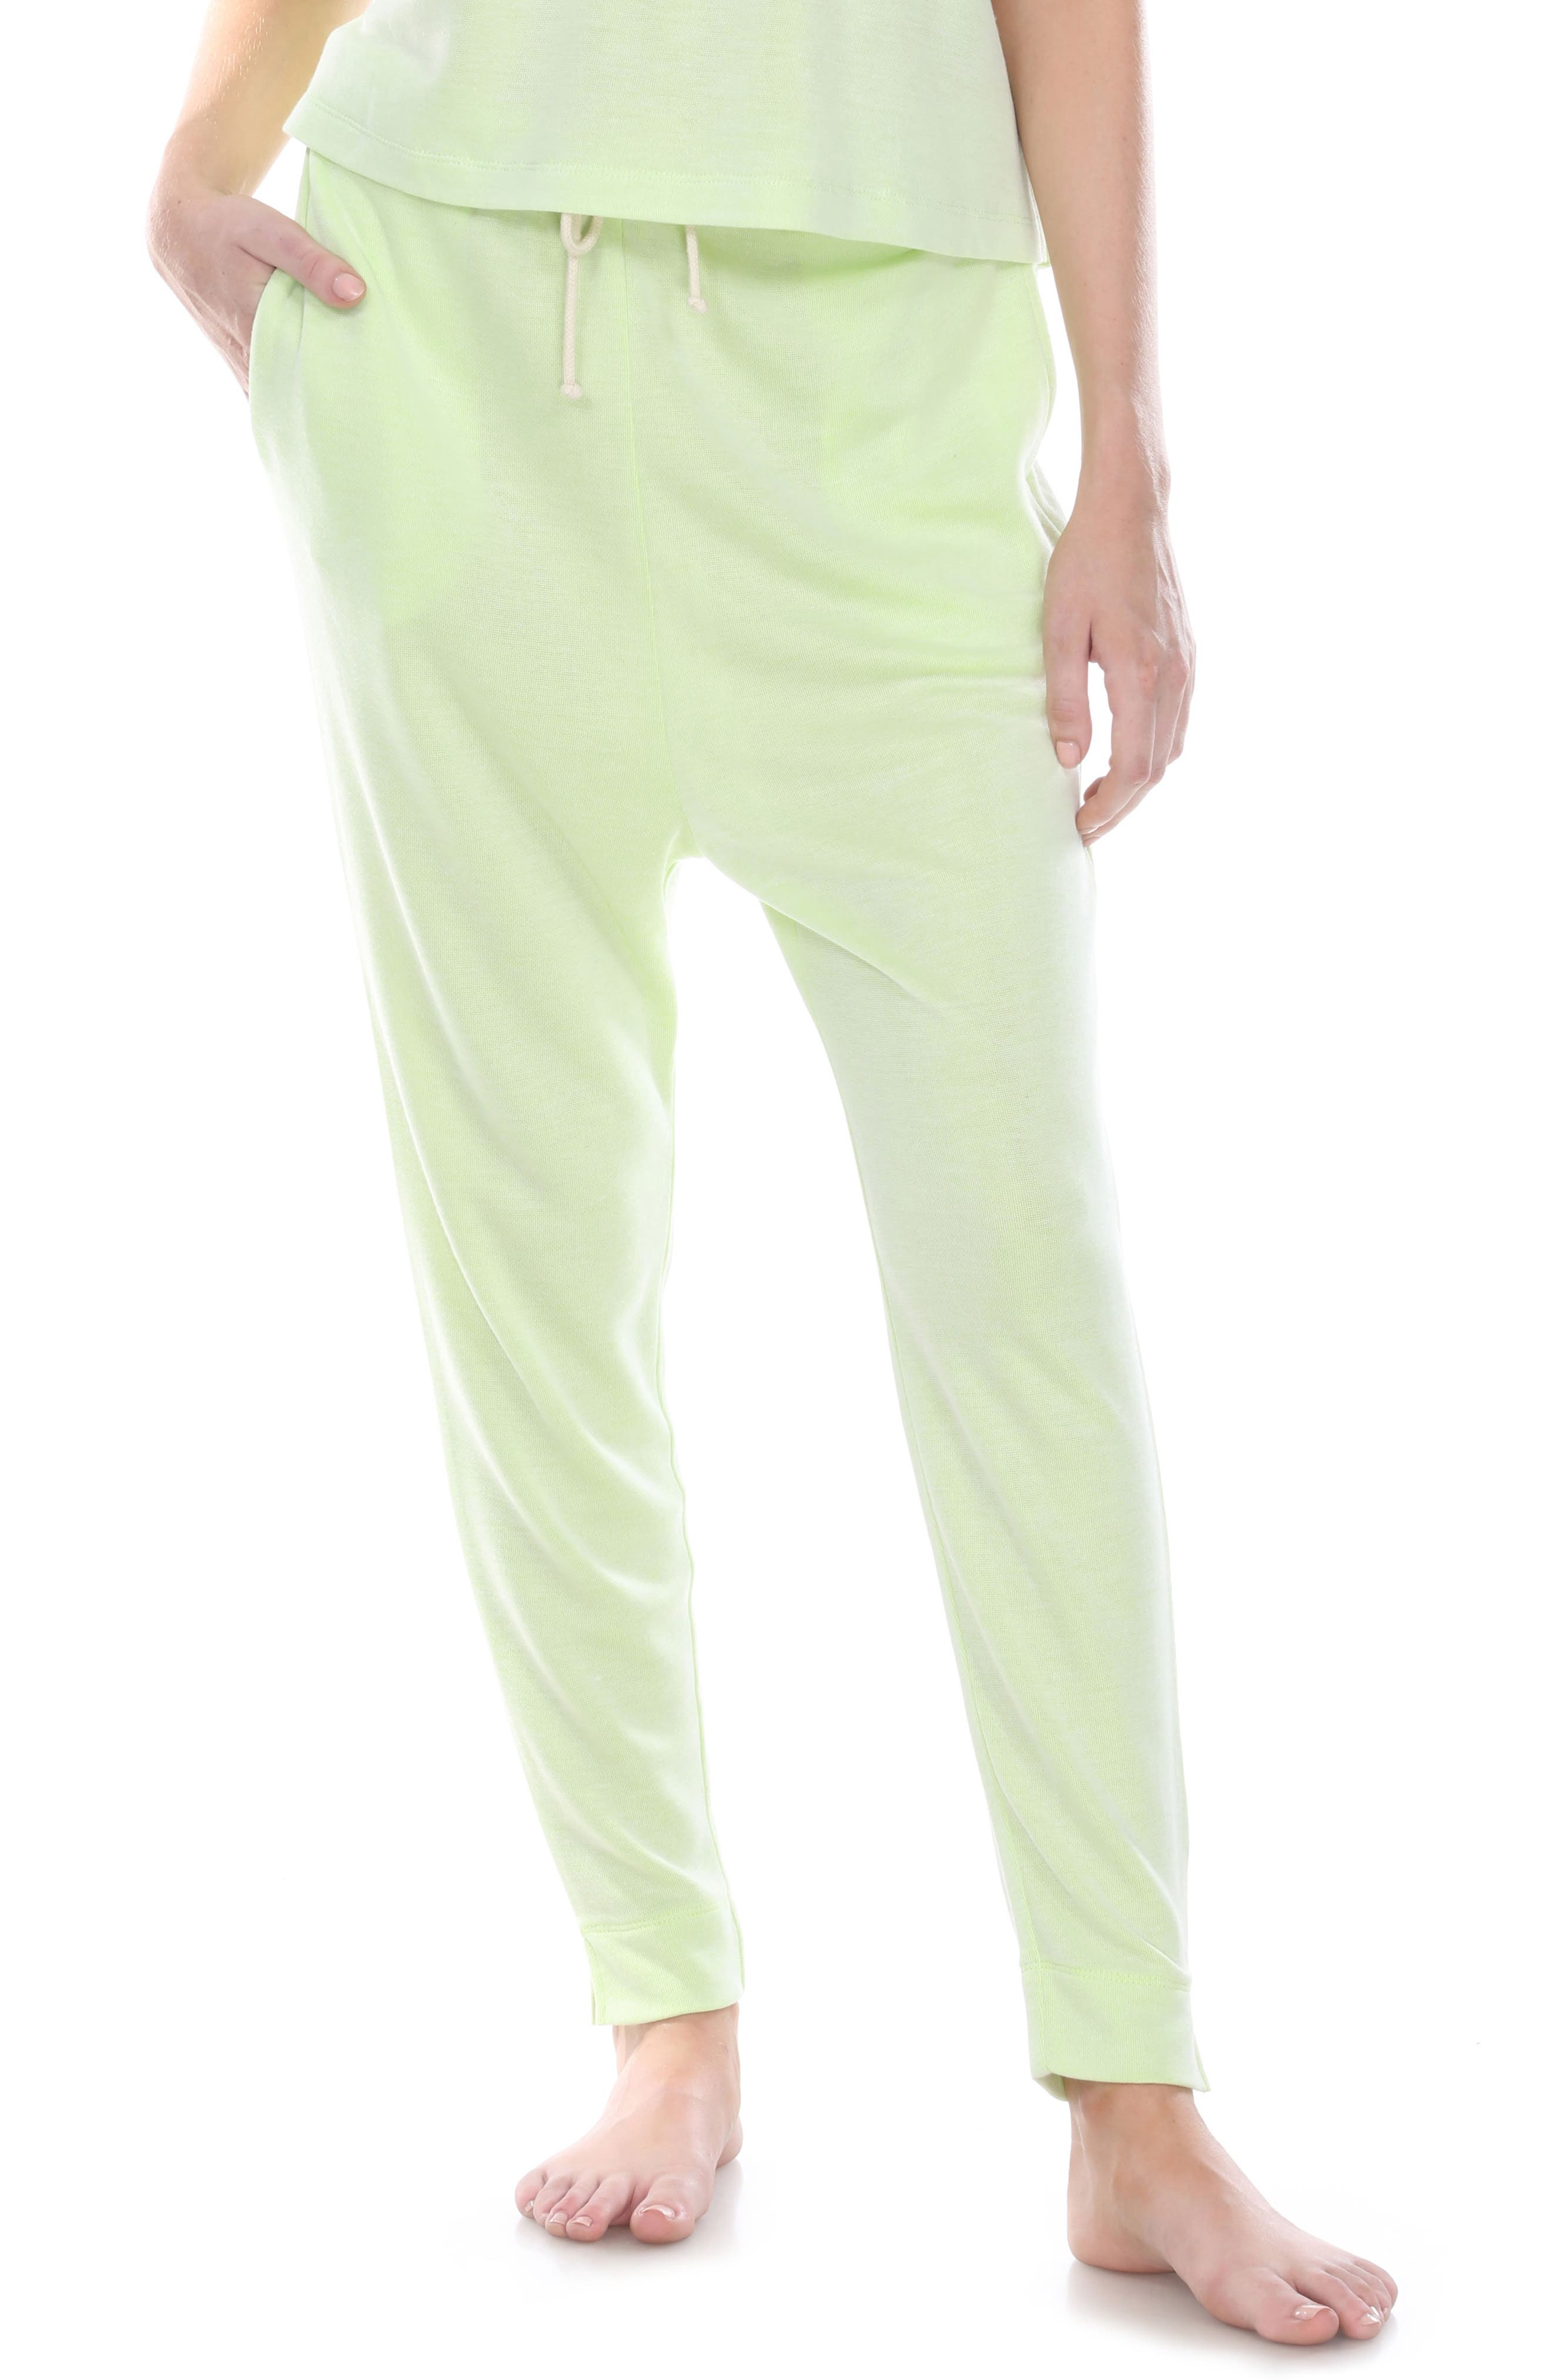 Take it easy in these soft and lightweight lounge pants that have split cuffs and an adjustable drawstring at the waist perfect for staying comfy on the couch. Style Name: Honeydew Intimates Sun Soaker Lounge Sweatpants. Style Number: 6051218. Available in stores.